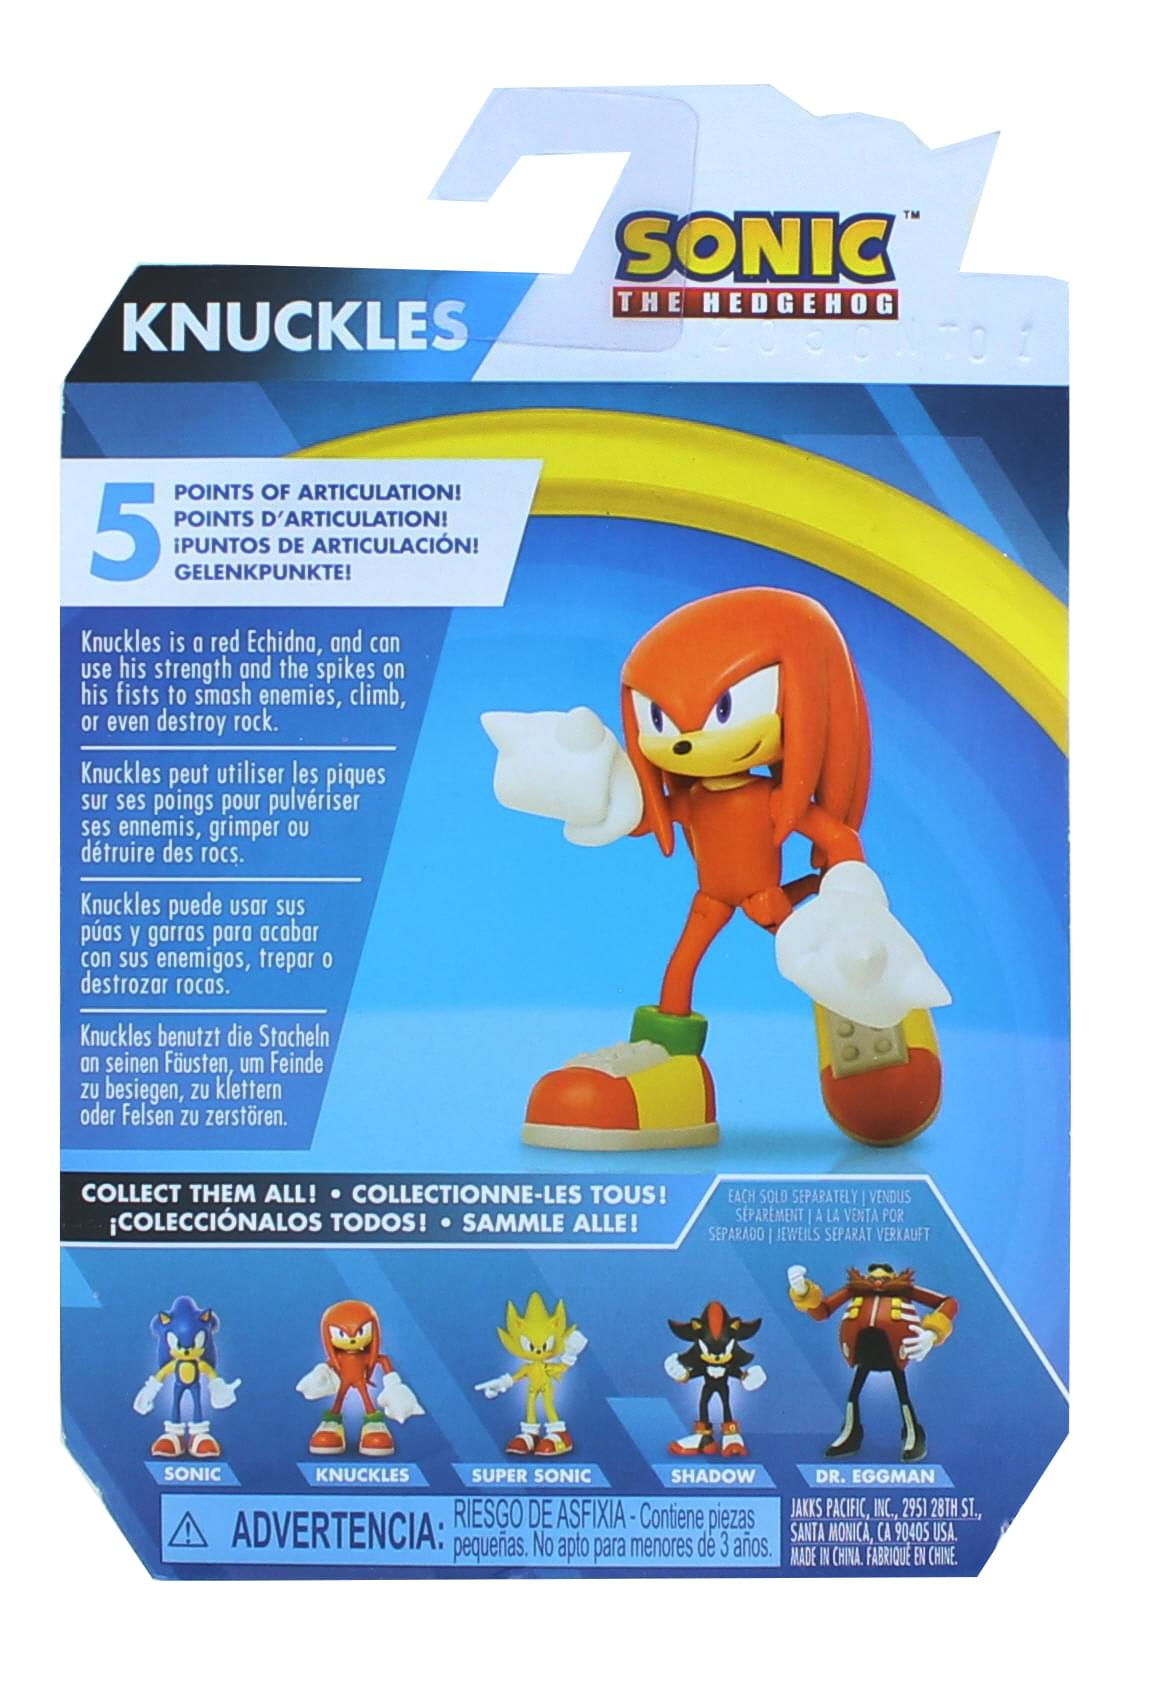 Sonic the Hedgehog 2.5 Inch Action Figure | Modern Knuckles